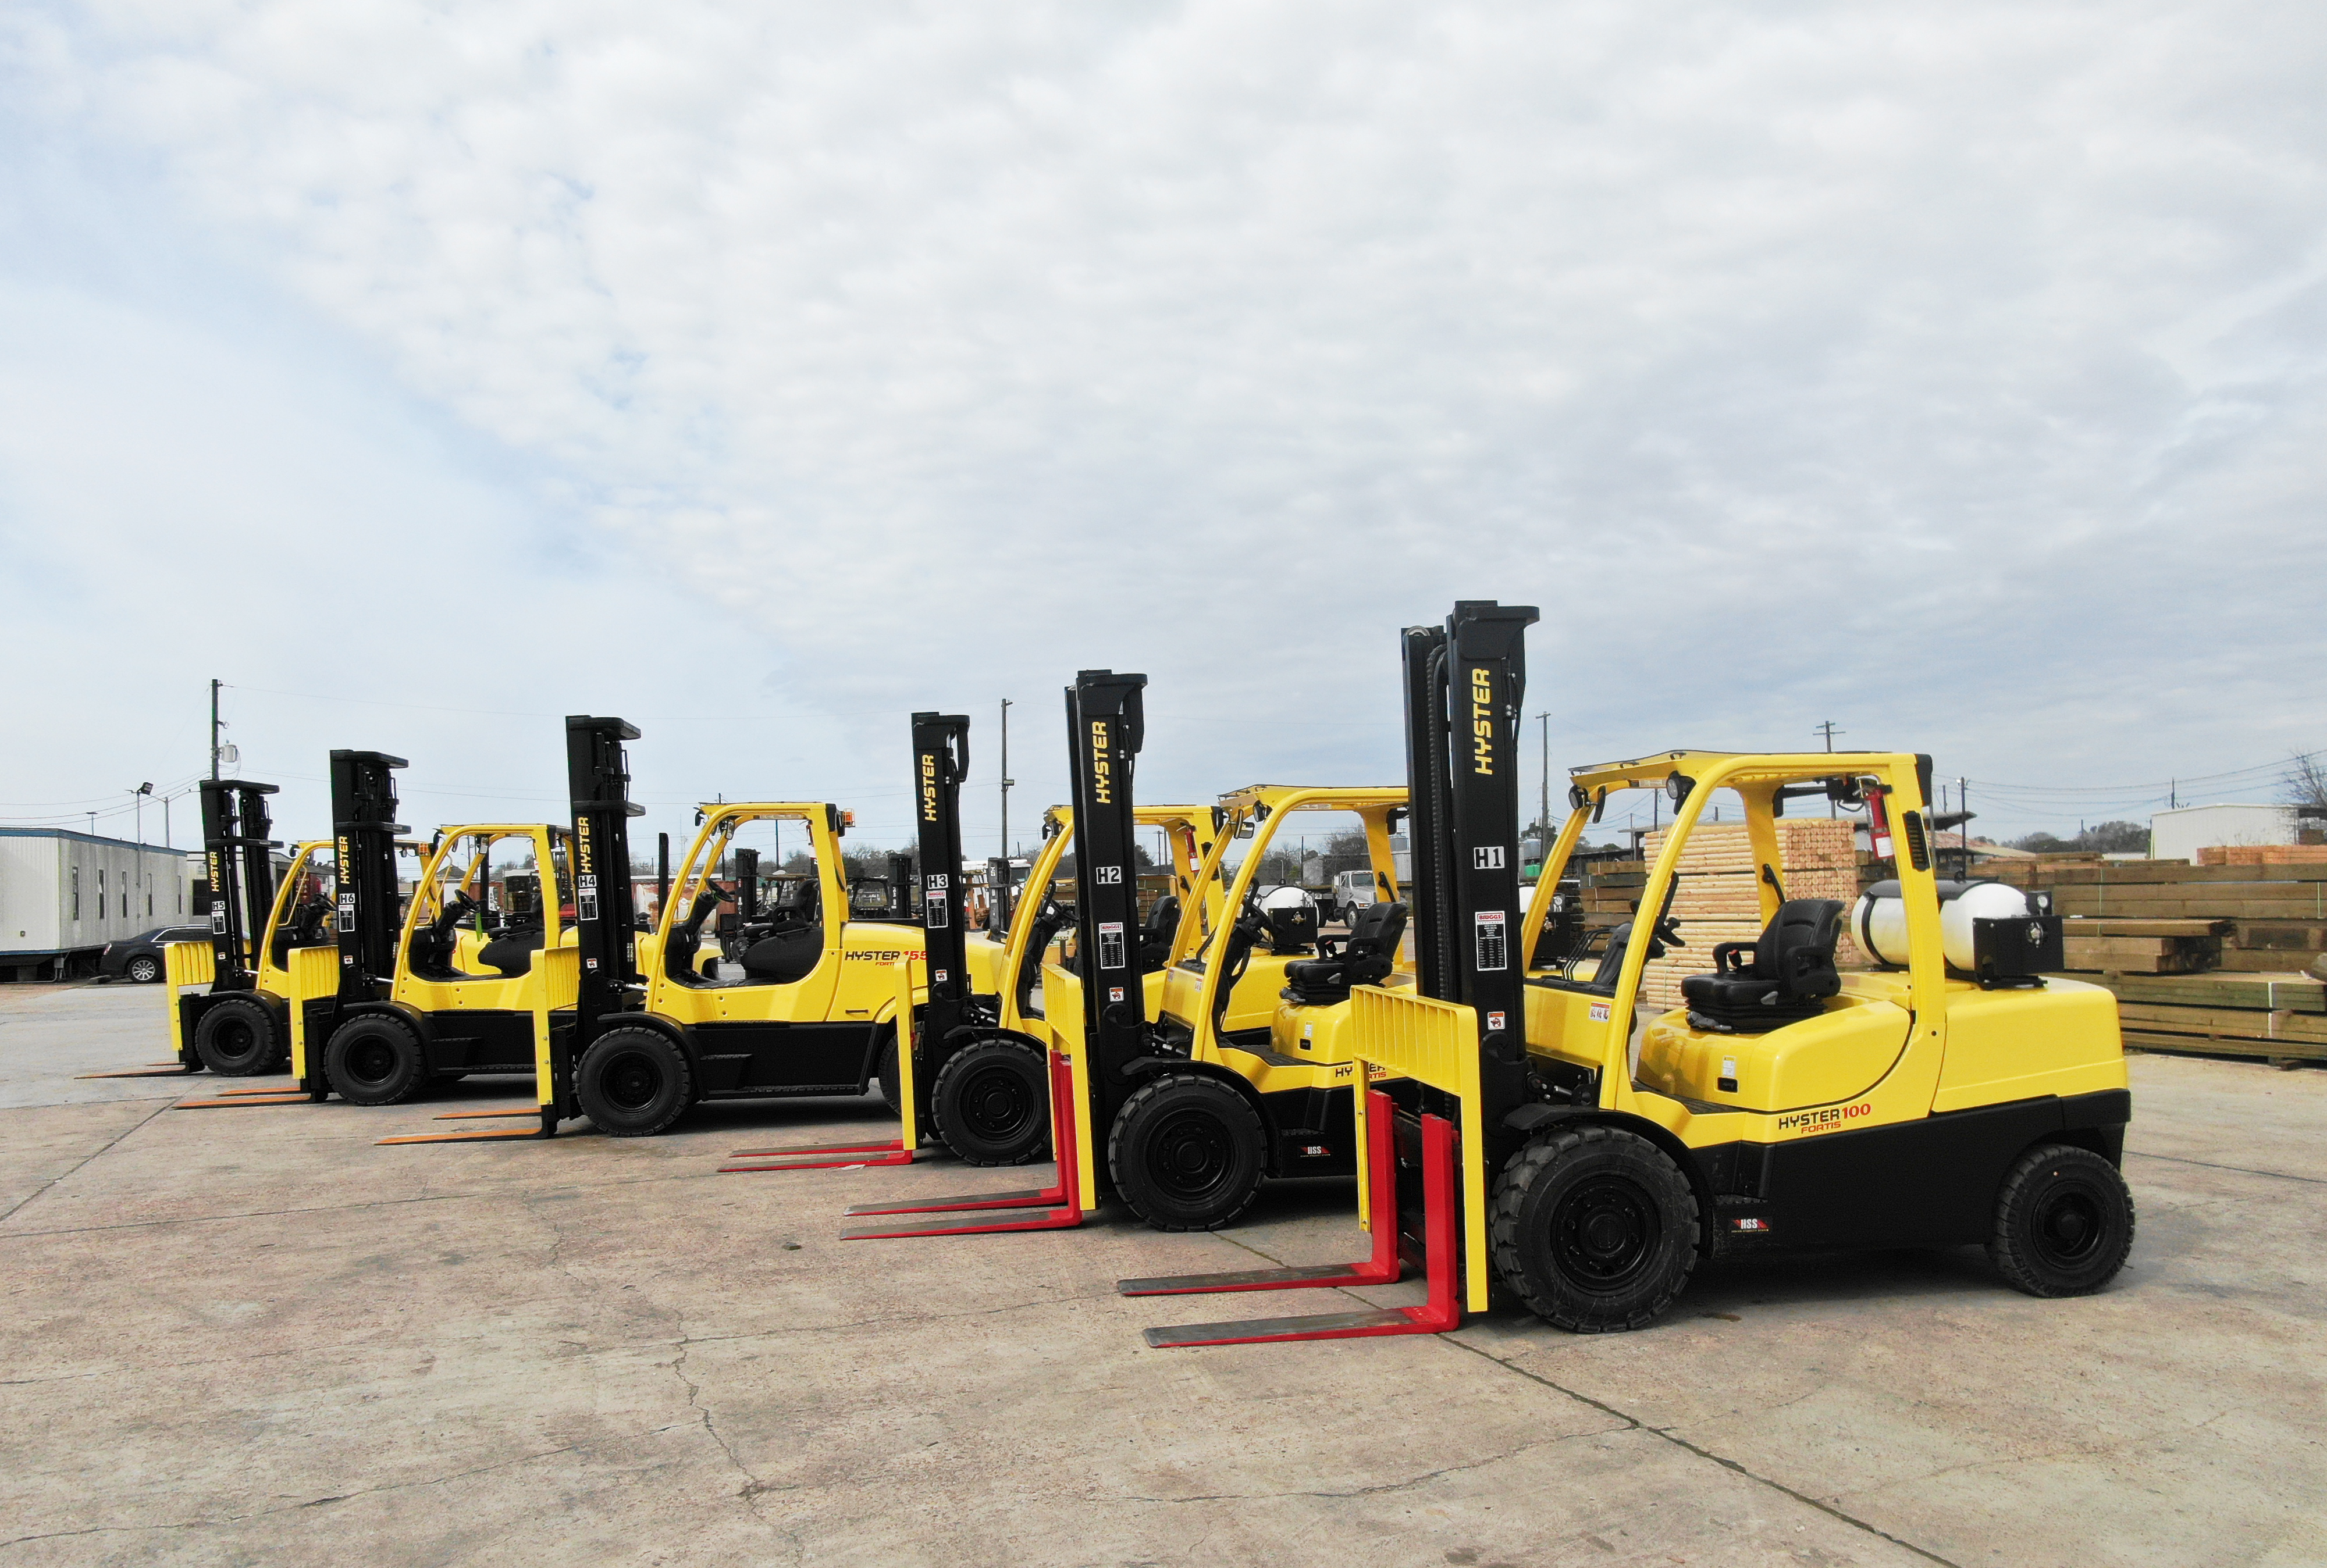 Building Products Plus Swaps Diesel Forklifts for Cleaner Natural Gas Forklifts